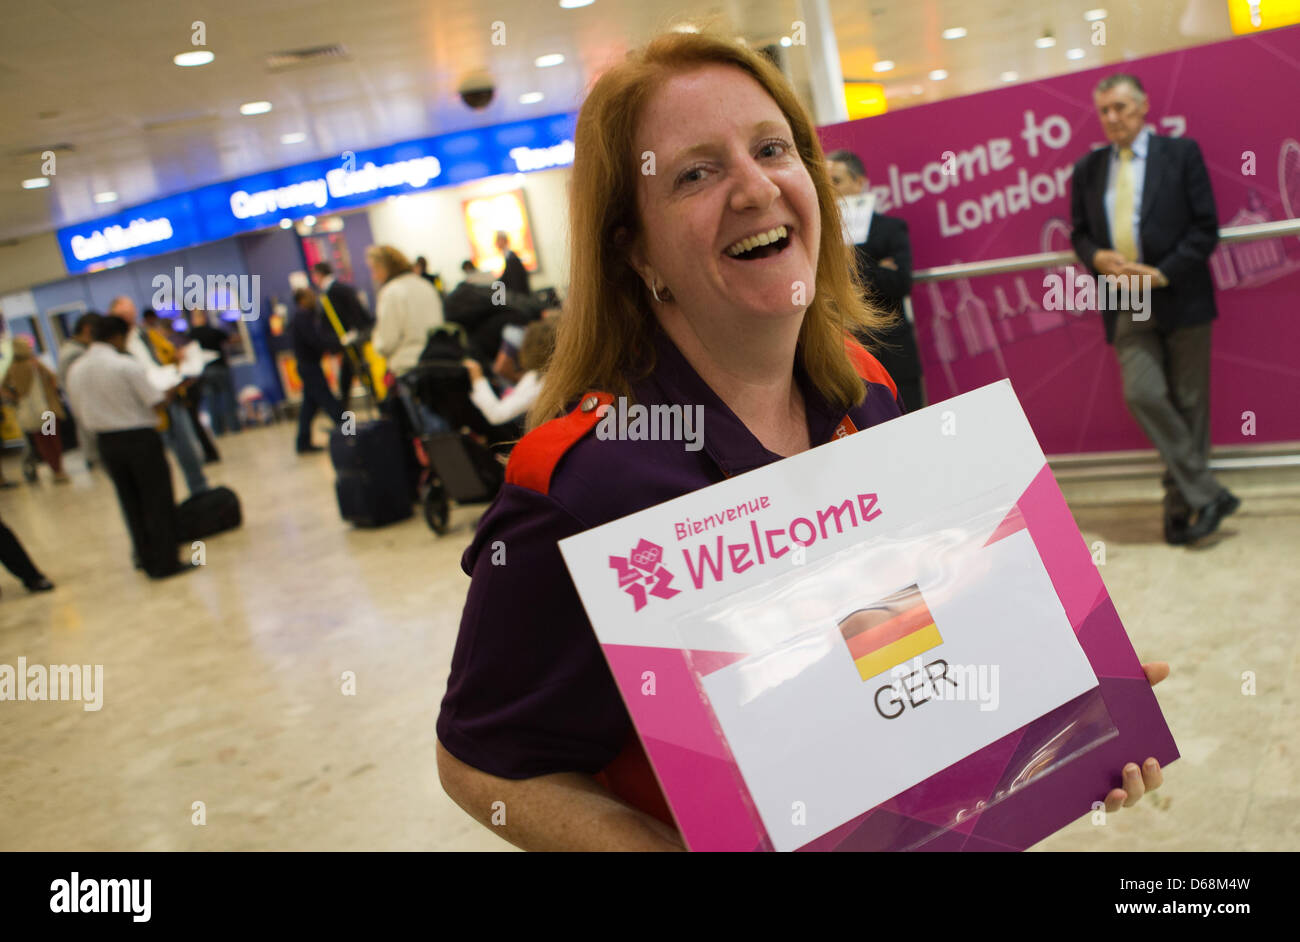 Sophie hannaford from the meet and greet team welcomes guests at sophie hannaford from the meet and greet team welcomes guests at heathrow airport in london great britain 18 july 2012 the london 2012 olympic games kristyandbryce Image collections